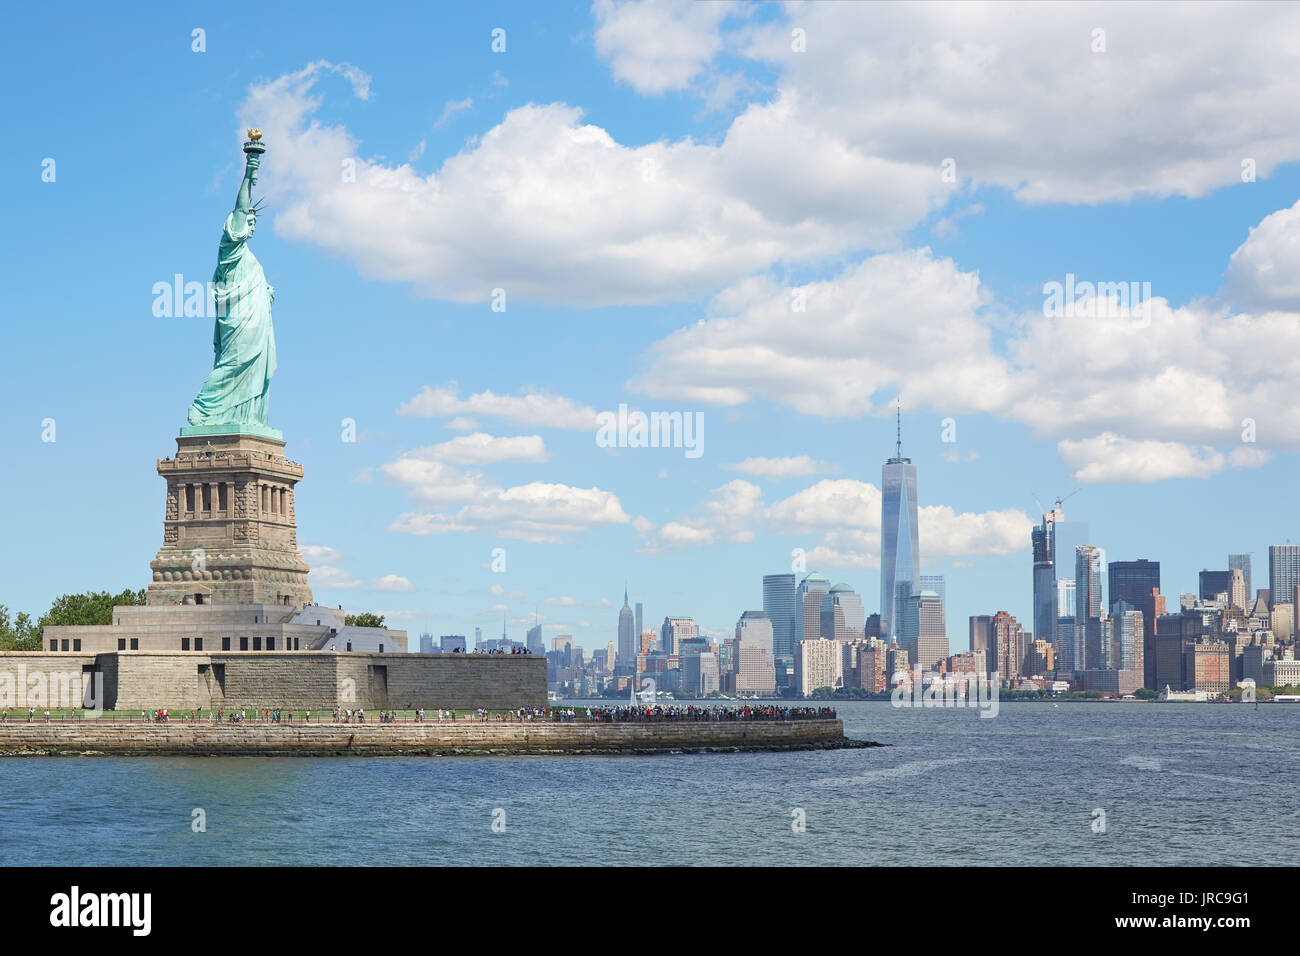 Statue of Liberty island and New York city skyline in a sunny day, white clouds Stock Photo